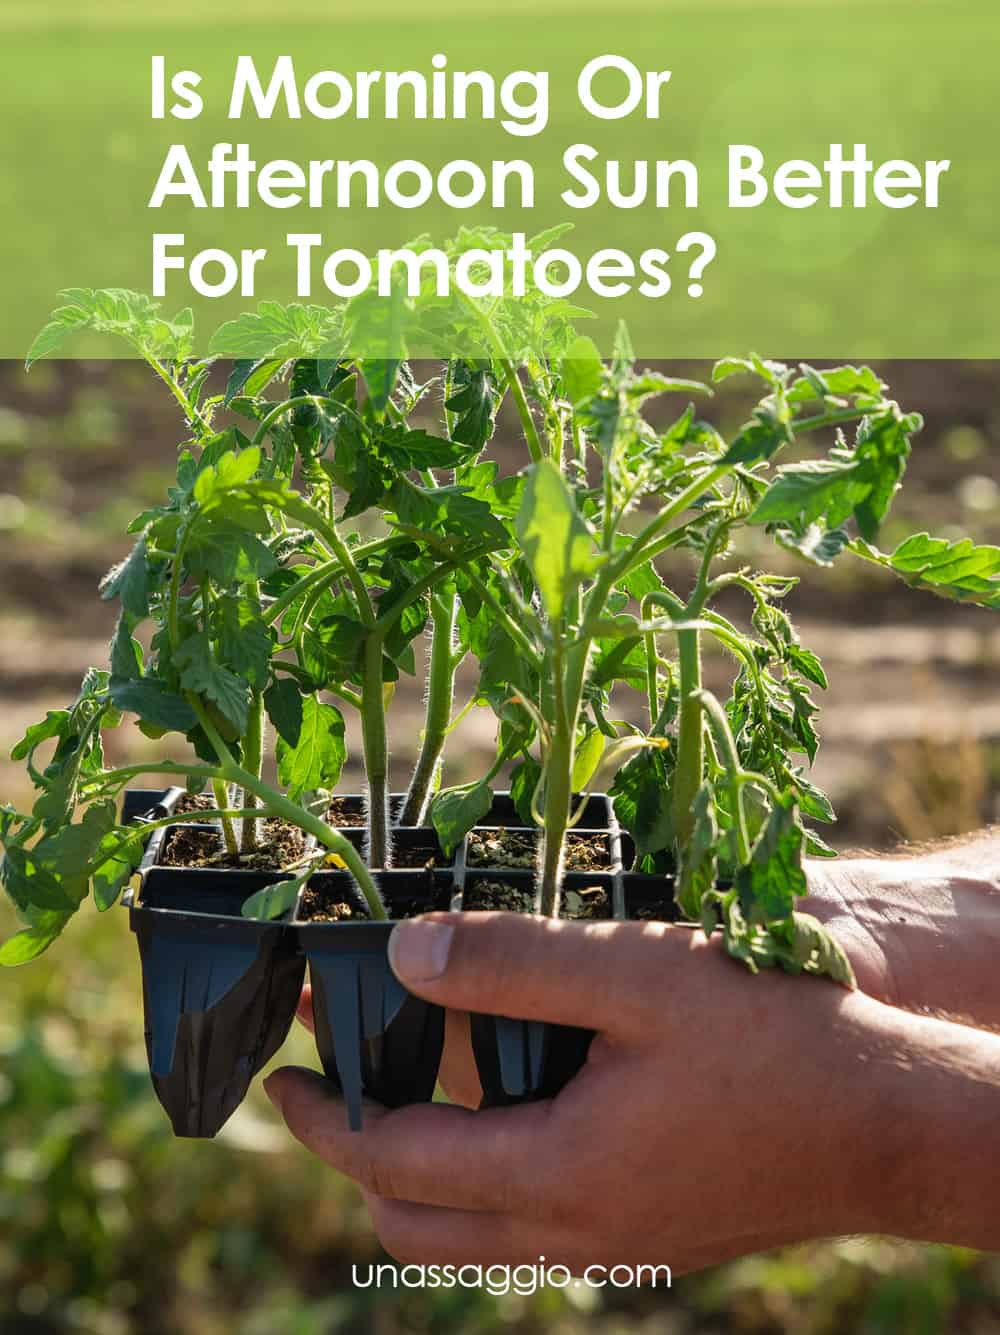 Is Morning Or Afternoon Sun Better For Tomatoes?